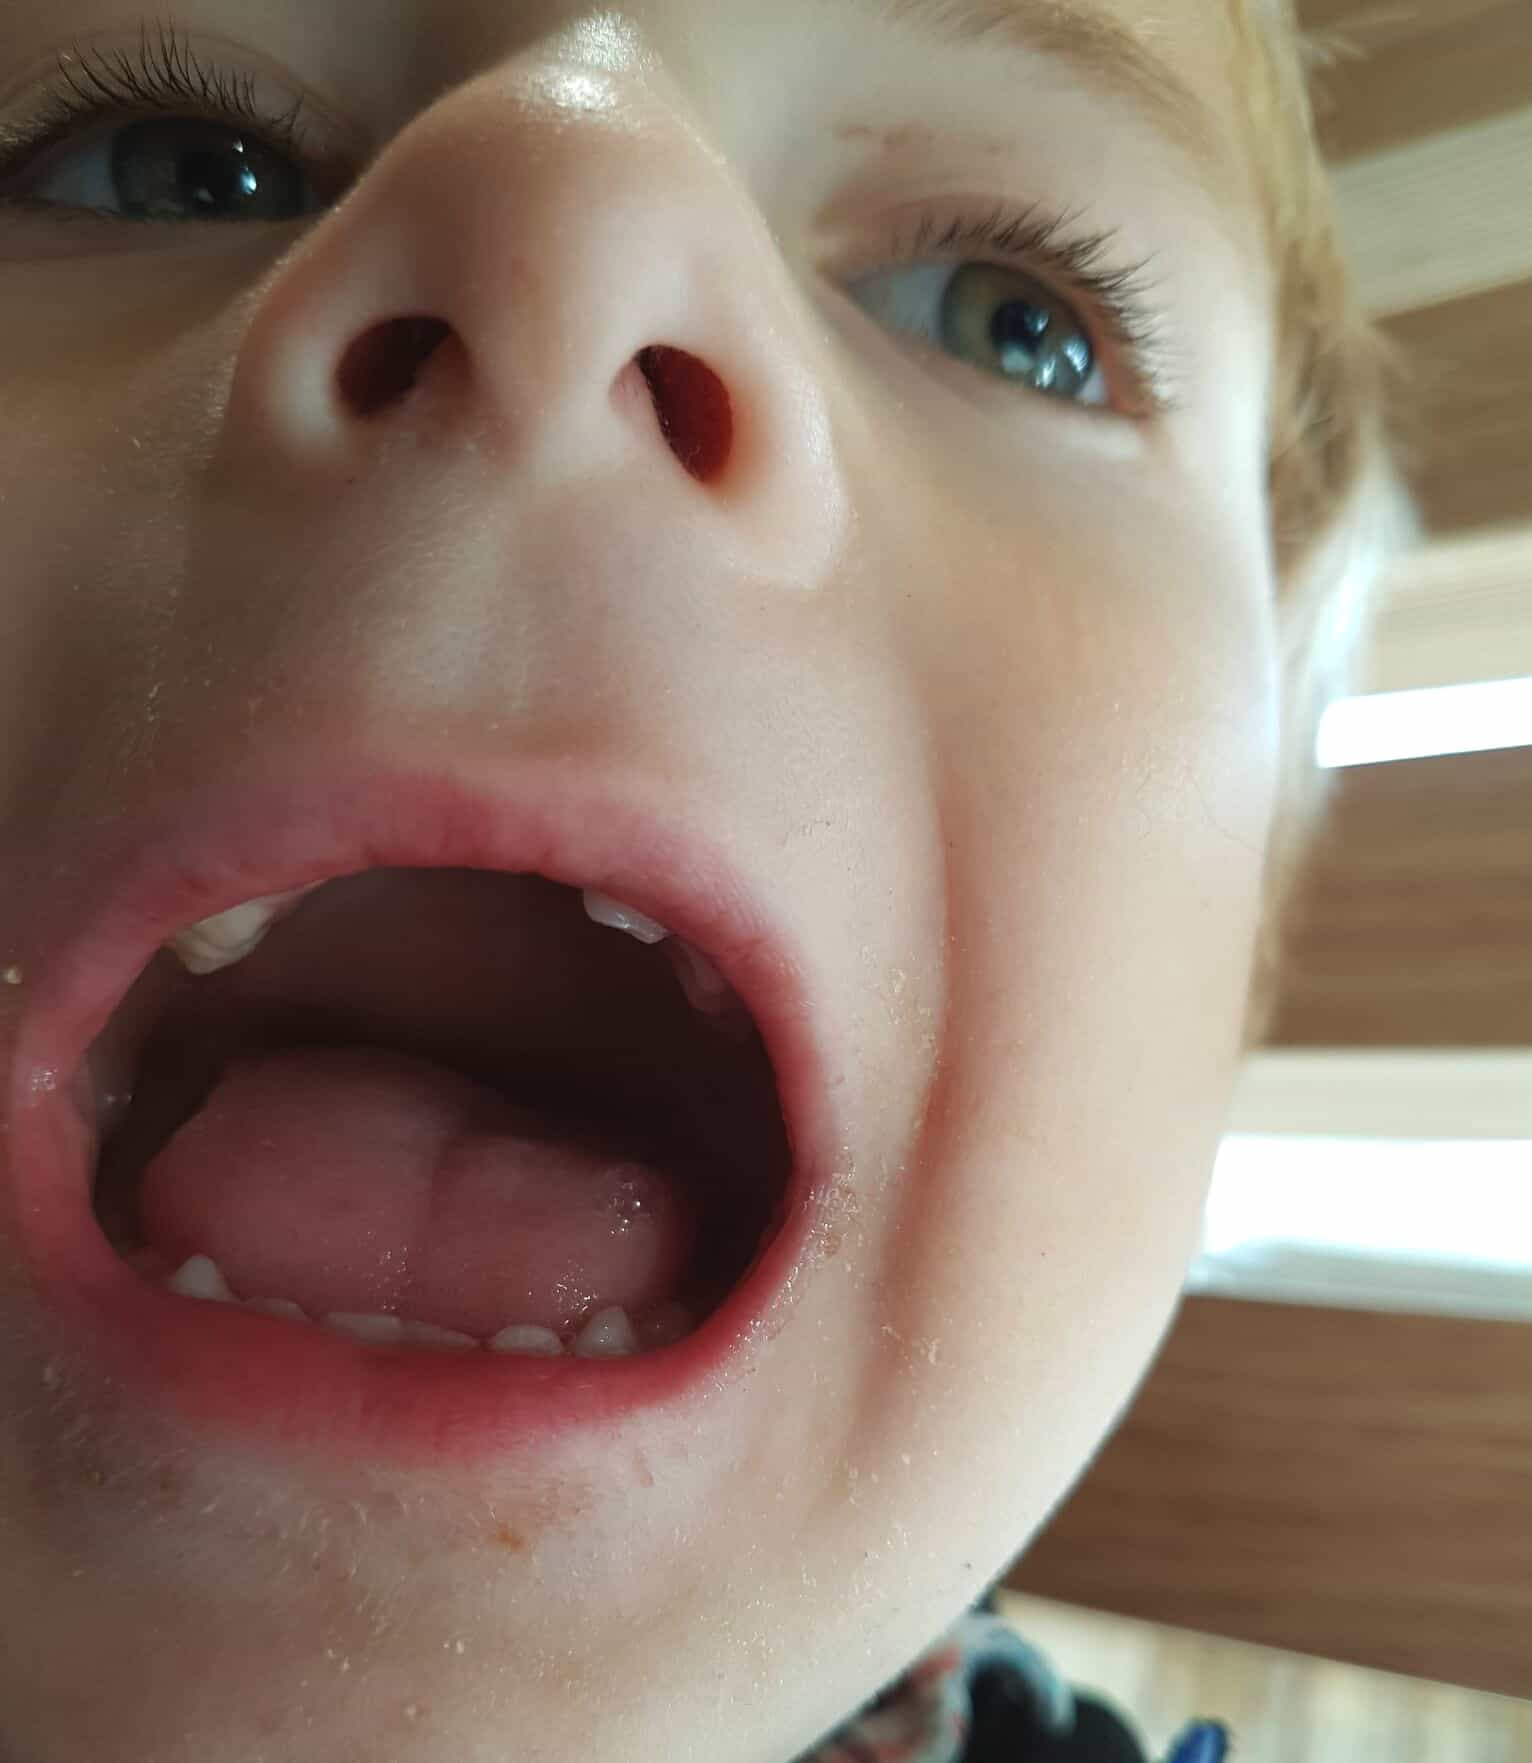 Teeth extraction in young children